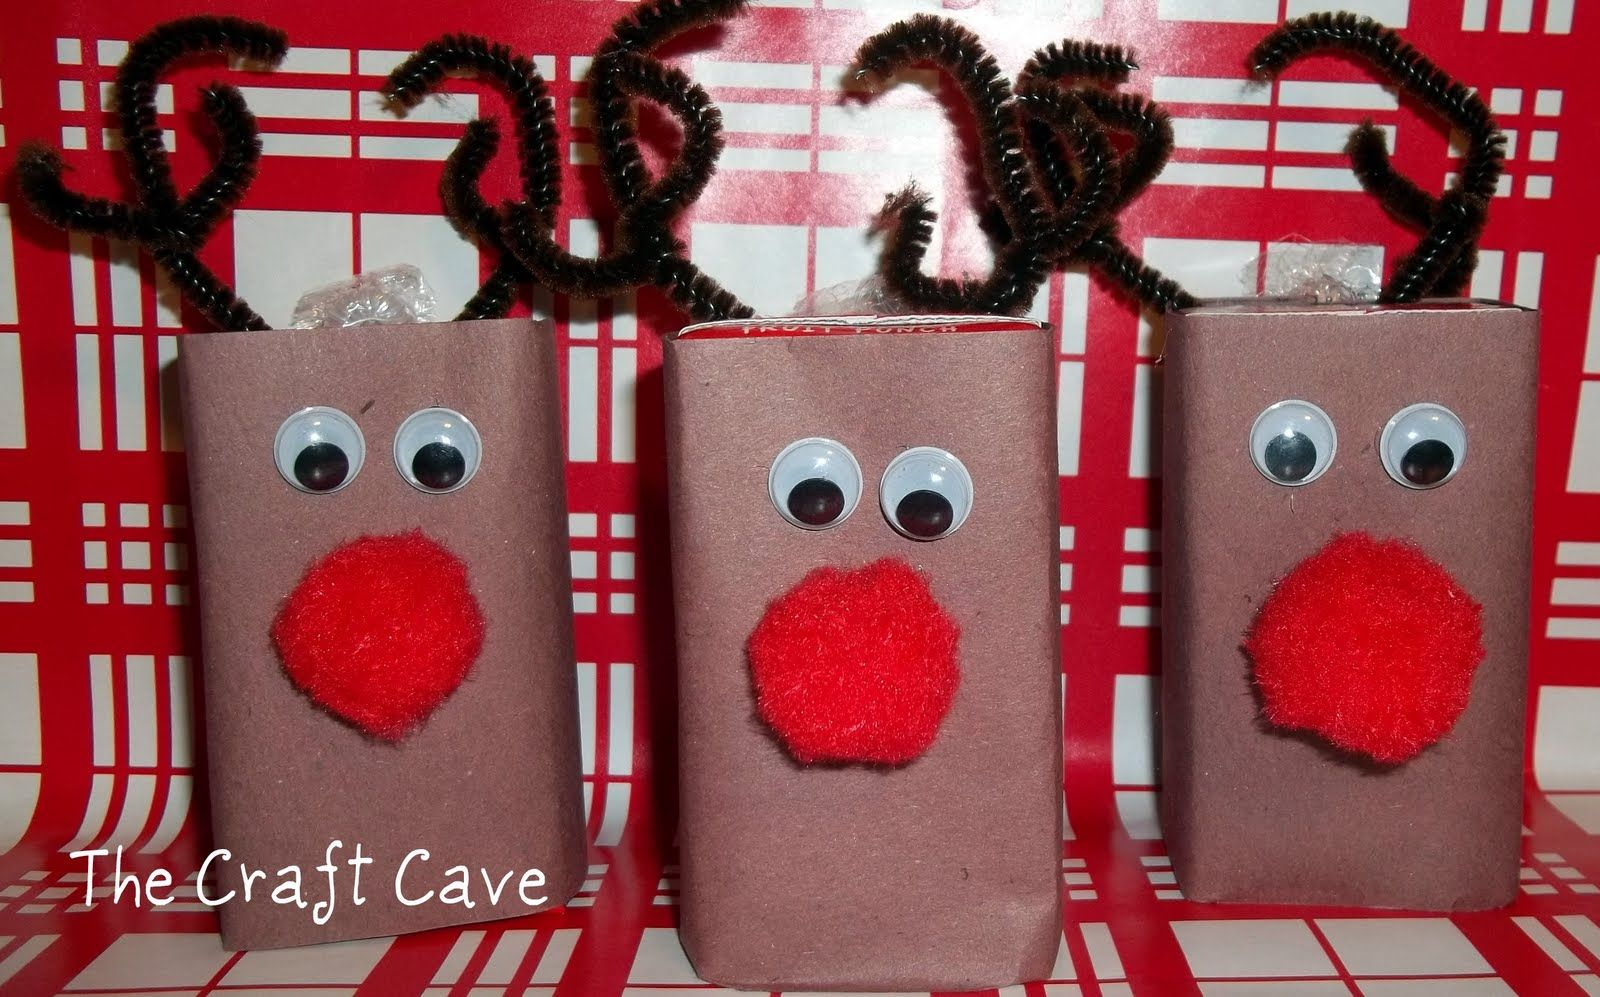 Thecraftcave Juice Box Crafts Christmas Ideas Gifts Kids Christmas Party